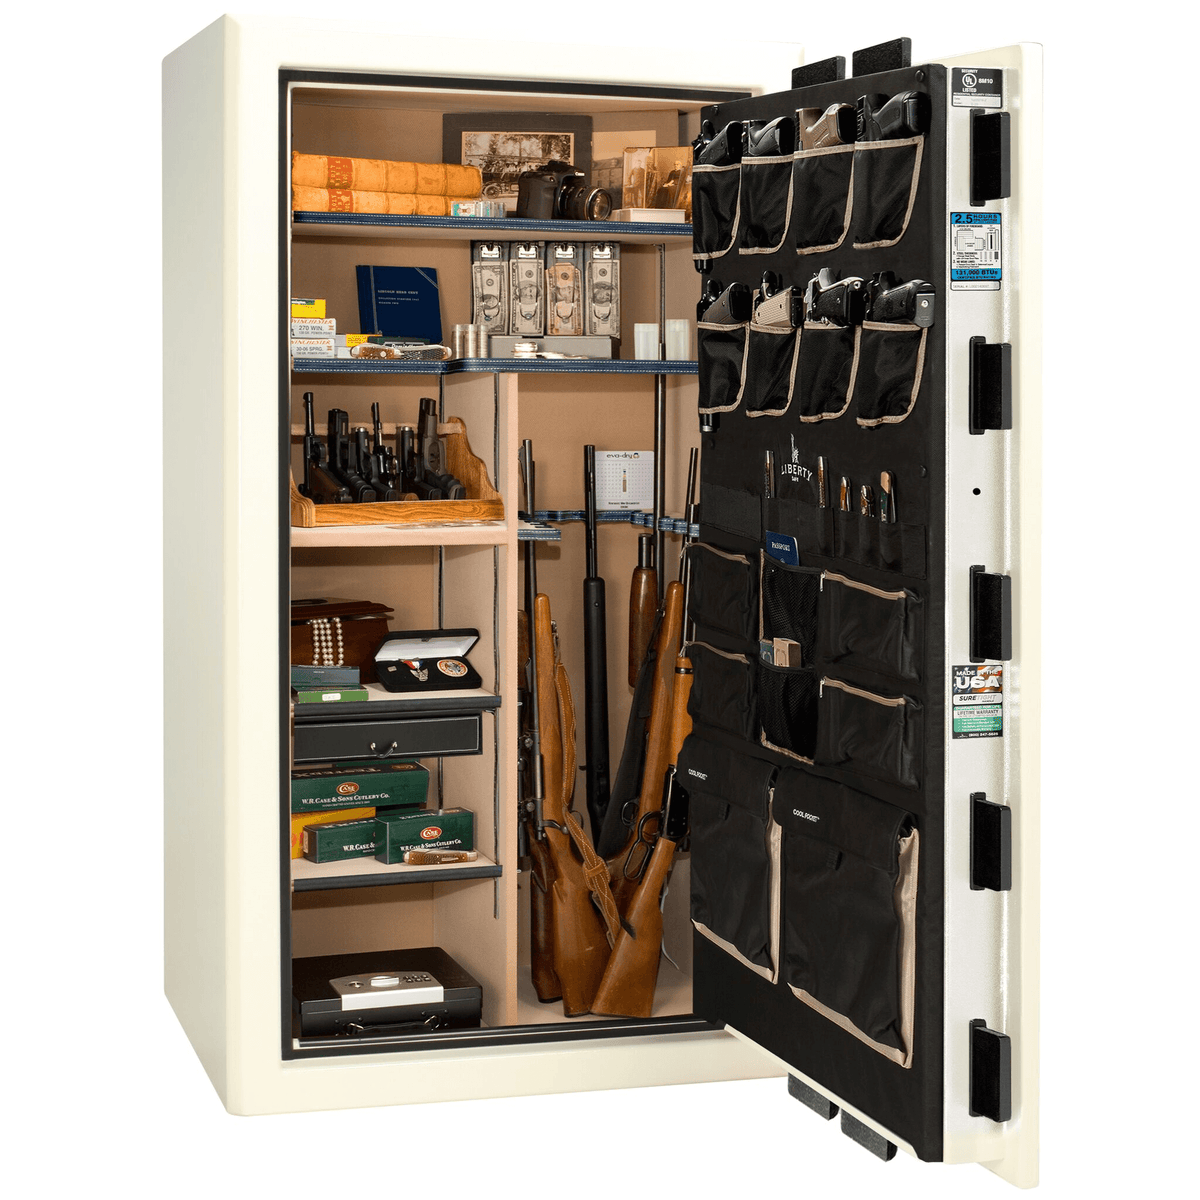 "Presidential Series | Level 8 Security | 2.5 Hours Fire Protection | 50 | Dimensions: 72.5""(H) x 42""(W) x 32""(D) 